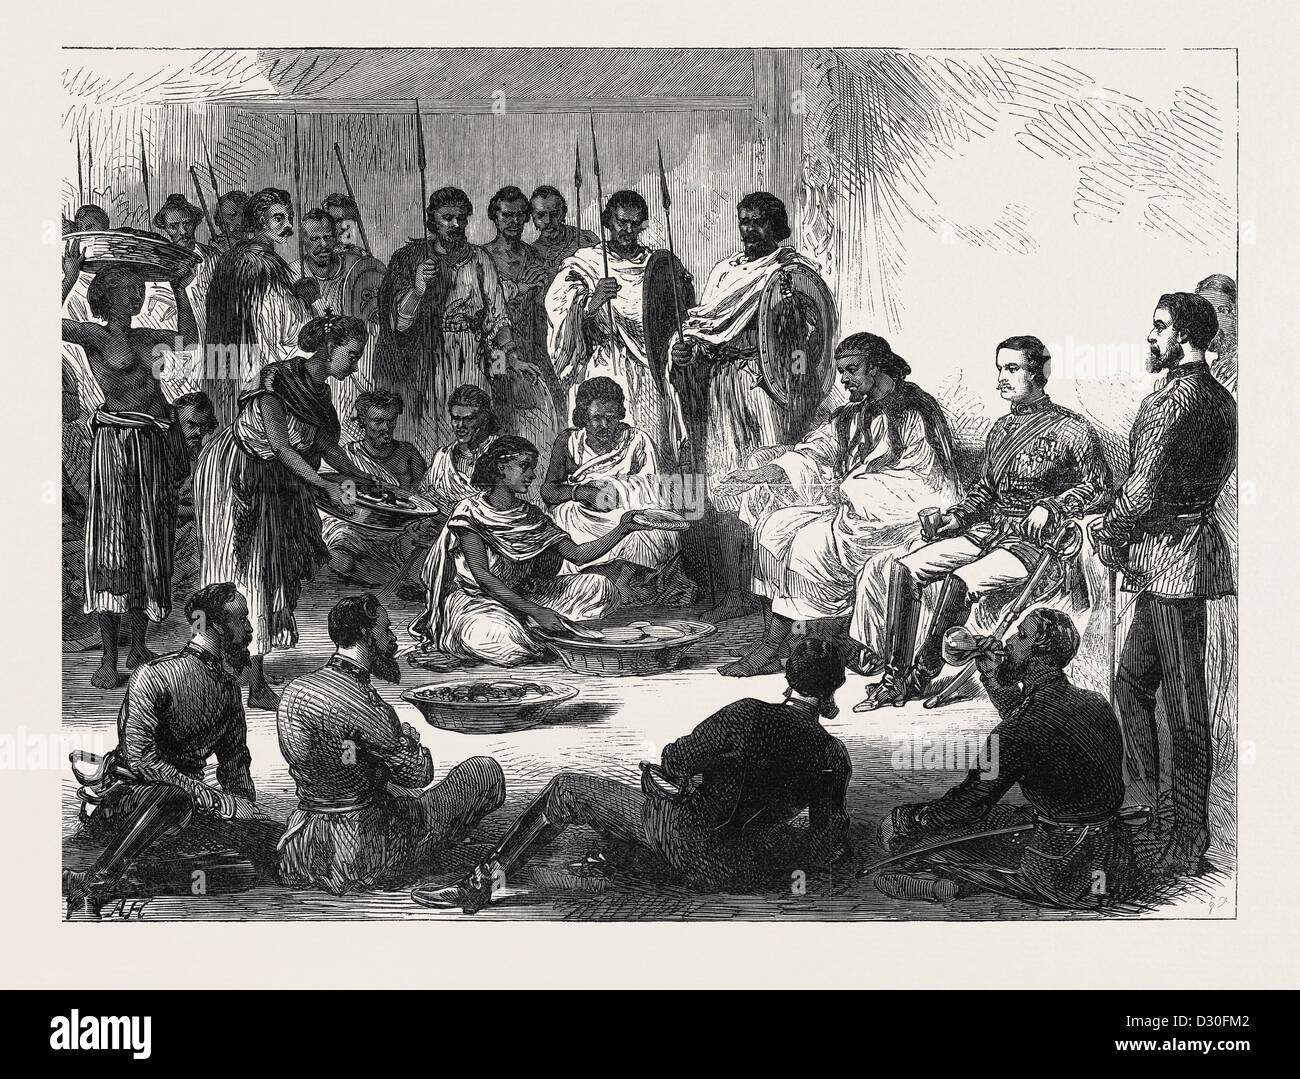 THE EXPEDITION TO ABYSSINIA: SIR ROBERT NAPIER ENTERTAINED BY THE PRINCE OF TIGRE 1868 - Stock Image